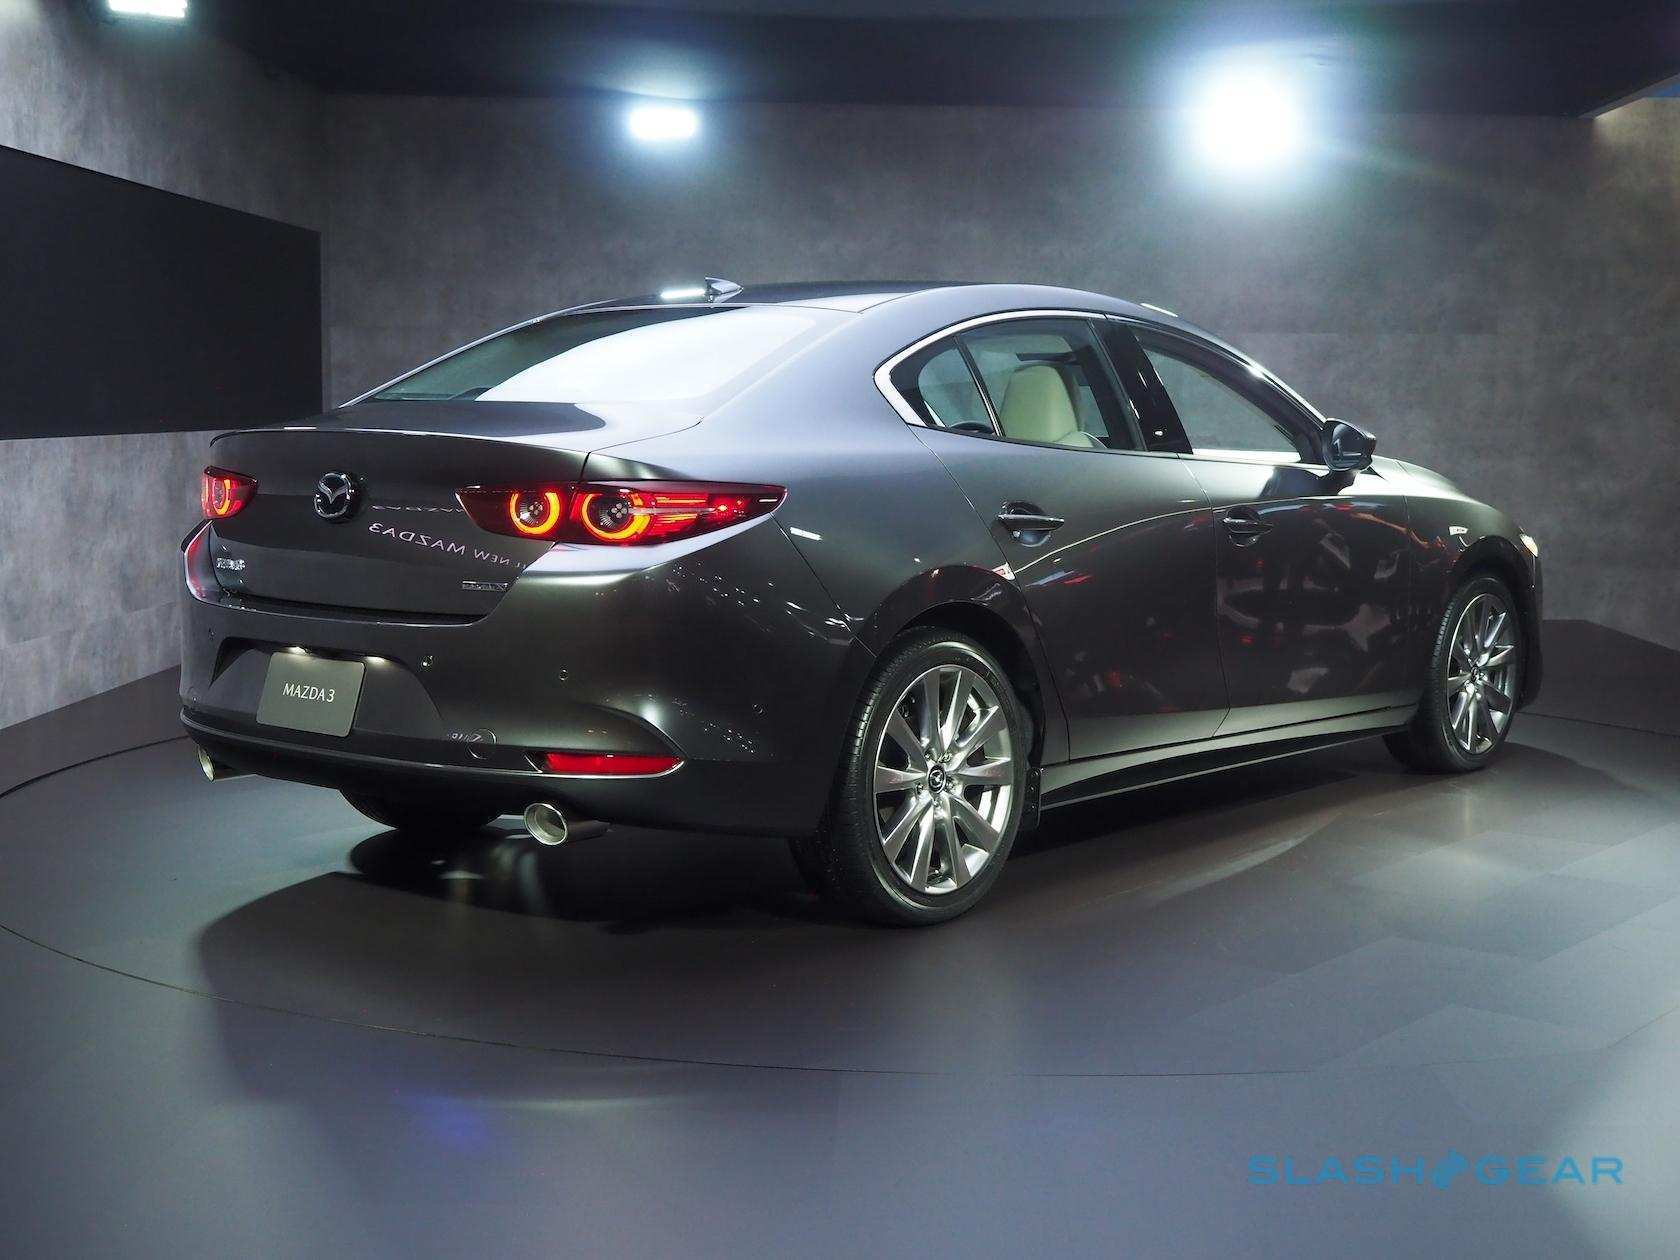 31 The Best 2020 Mazdaspeed 3 Exterior And Interior